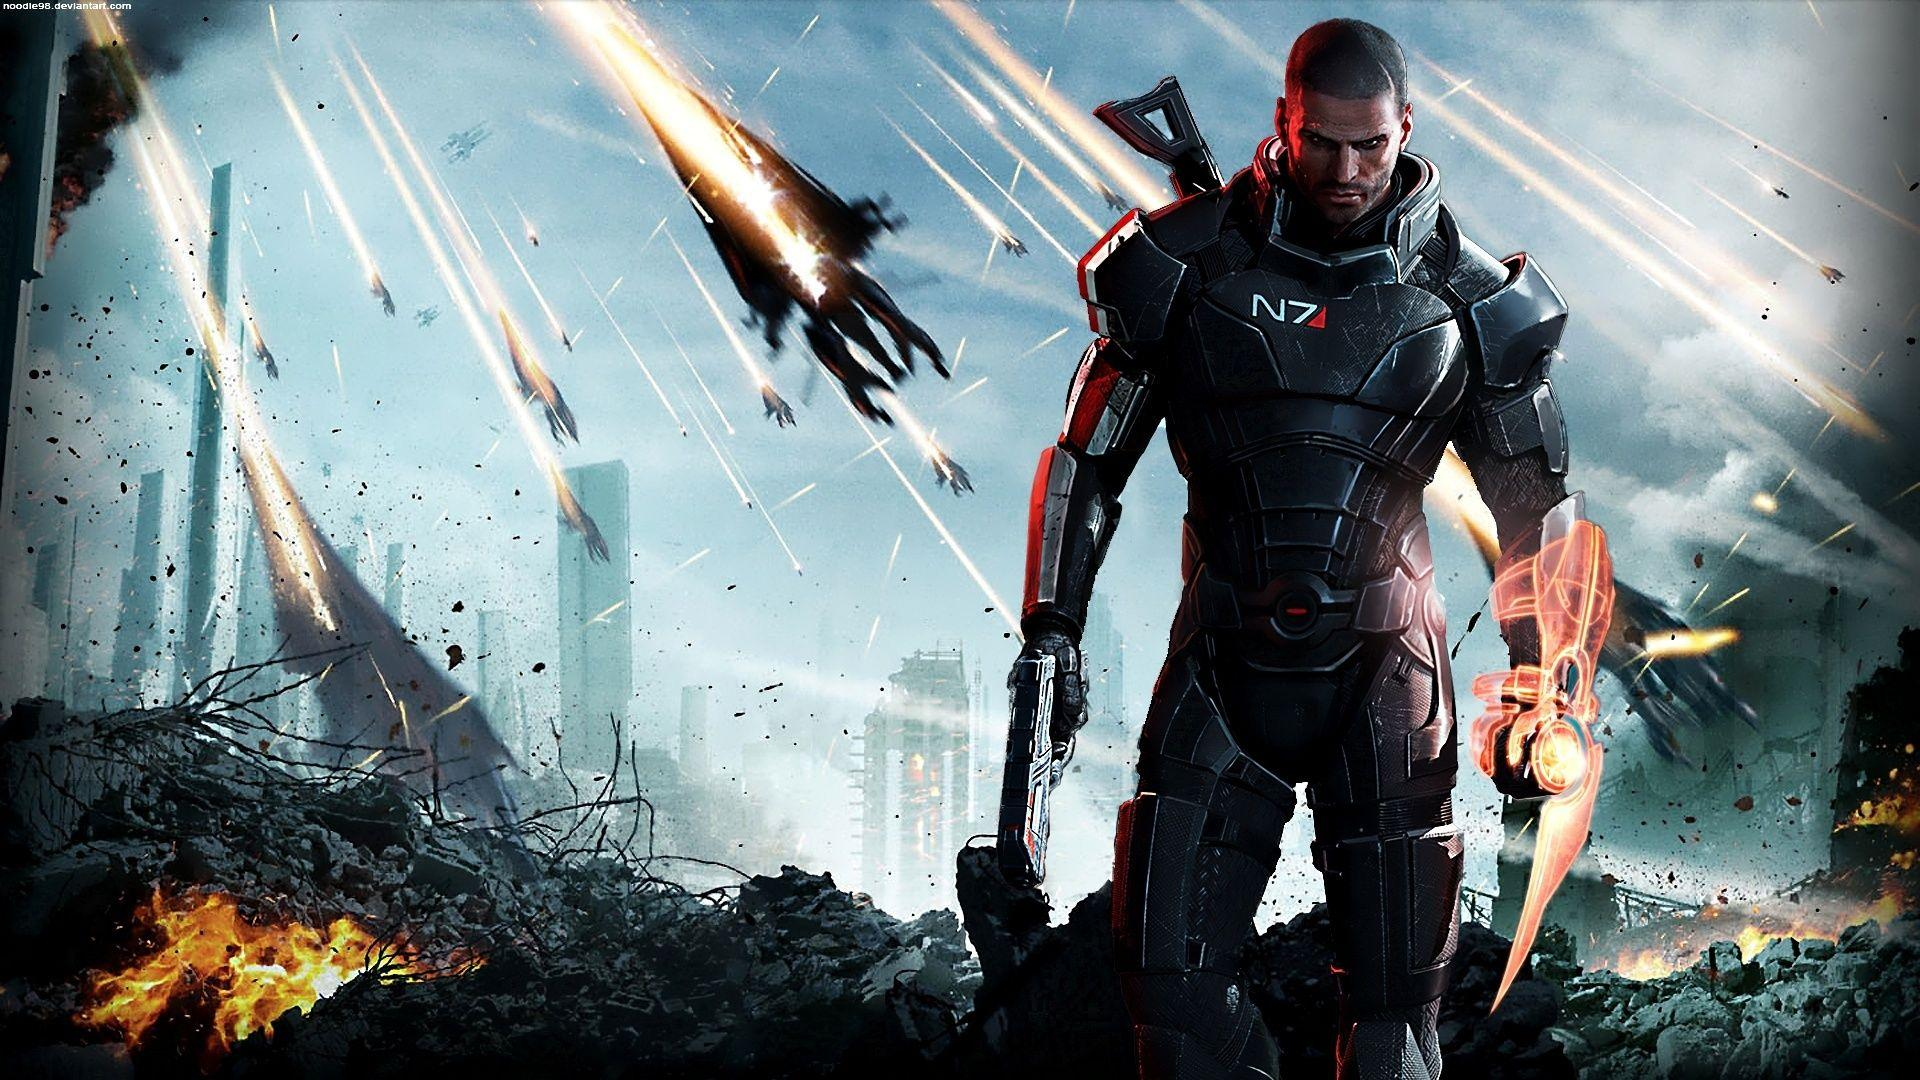 Mass Effect Remastered Trilogy